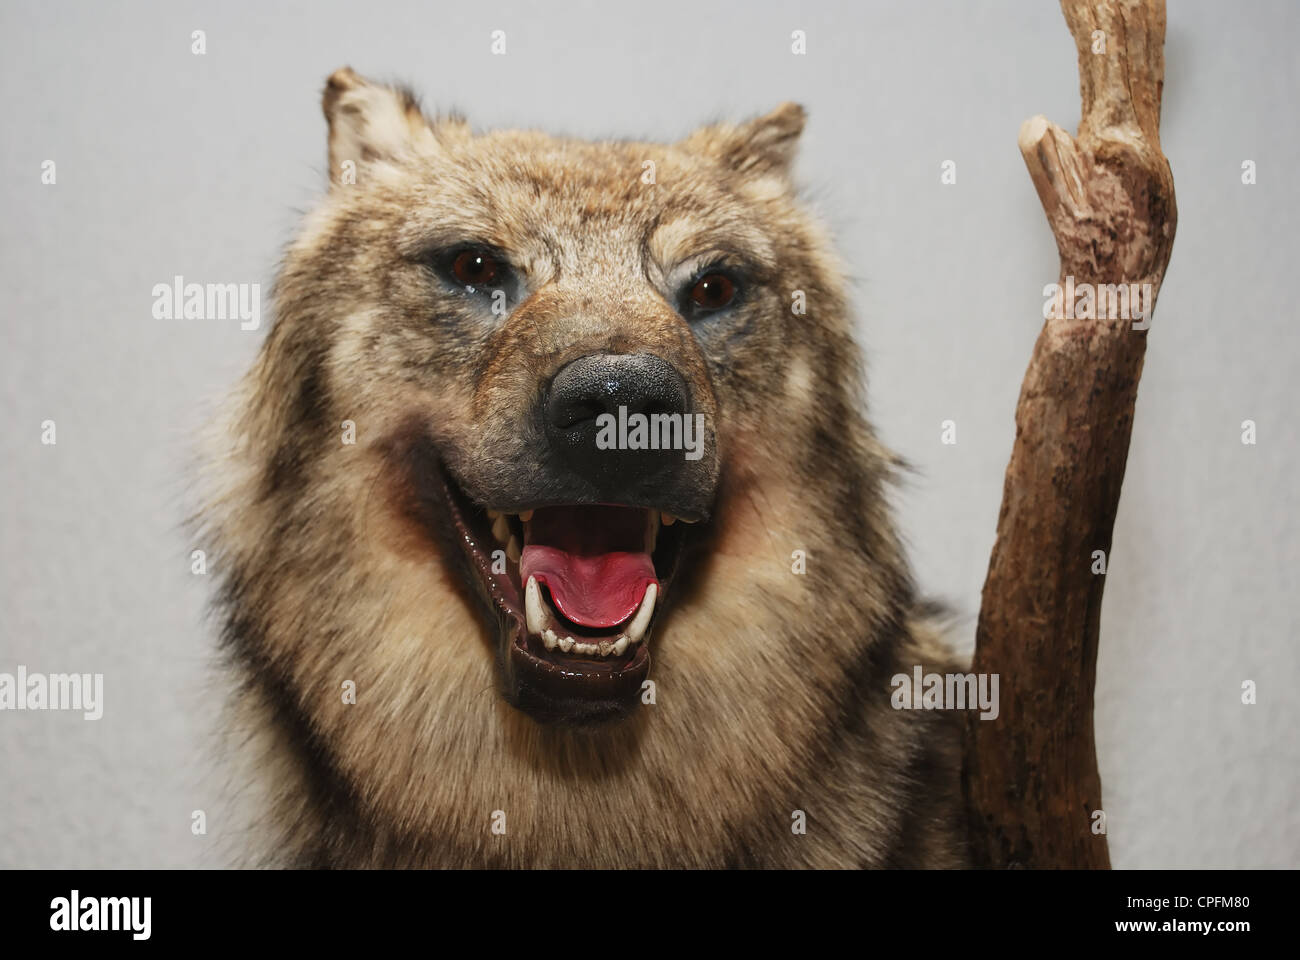 stuffed wolf head with open mouth against gray background - Stock Image